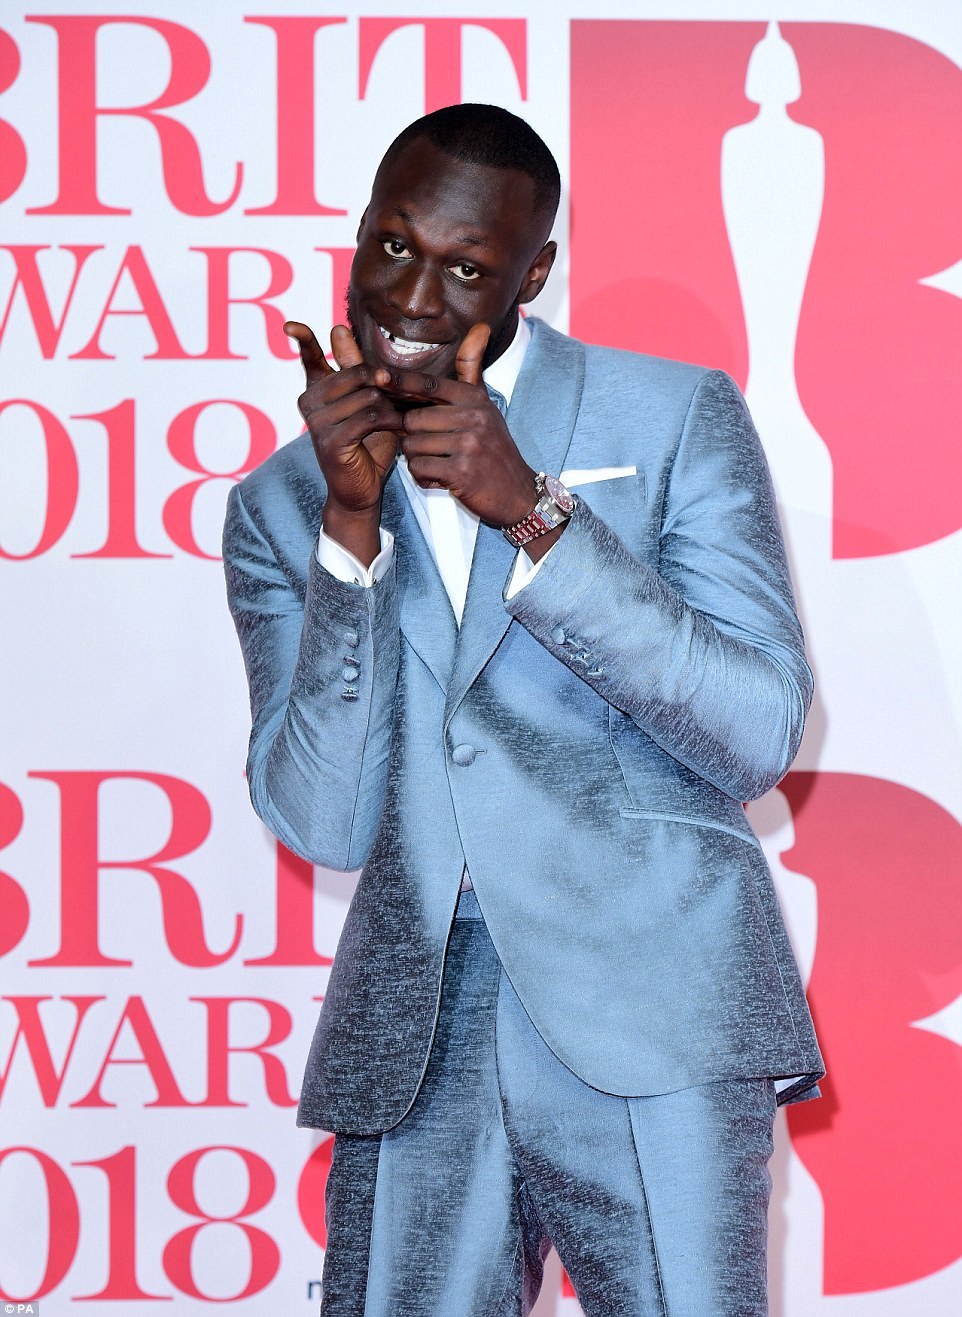 Looking good: While his girlfriend Maya posed elsewhere on the red carpet, Stormzy struck a number of fun poses in his eye-catching blue suit from Savile Row tailor, Richard James